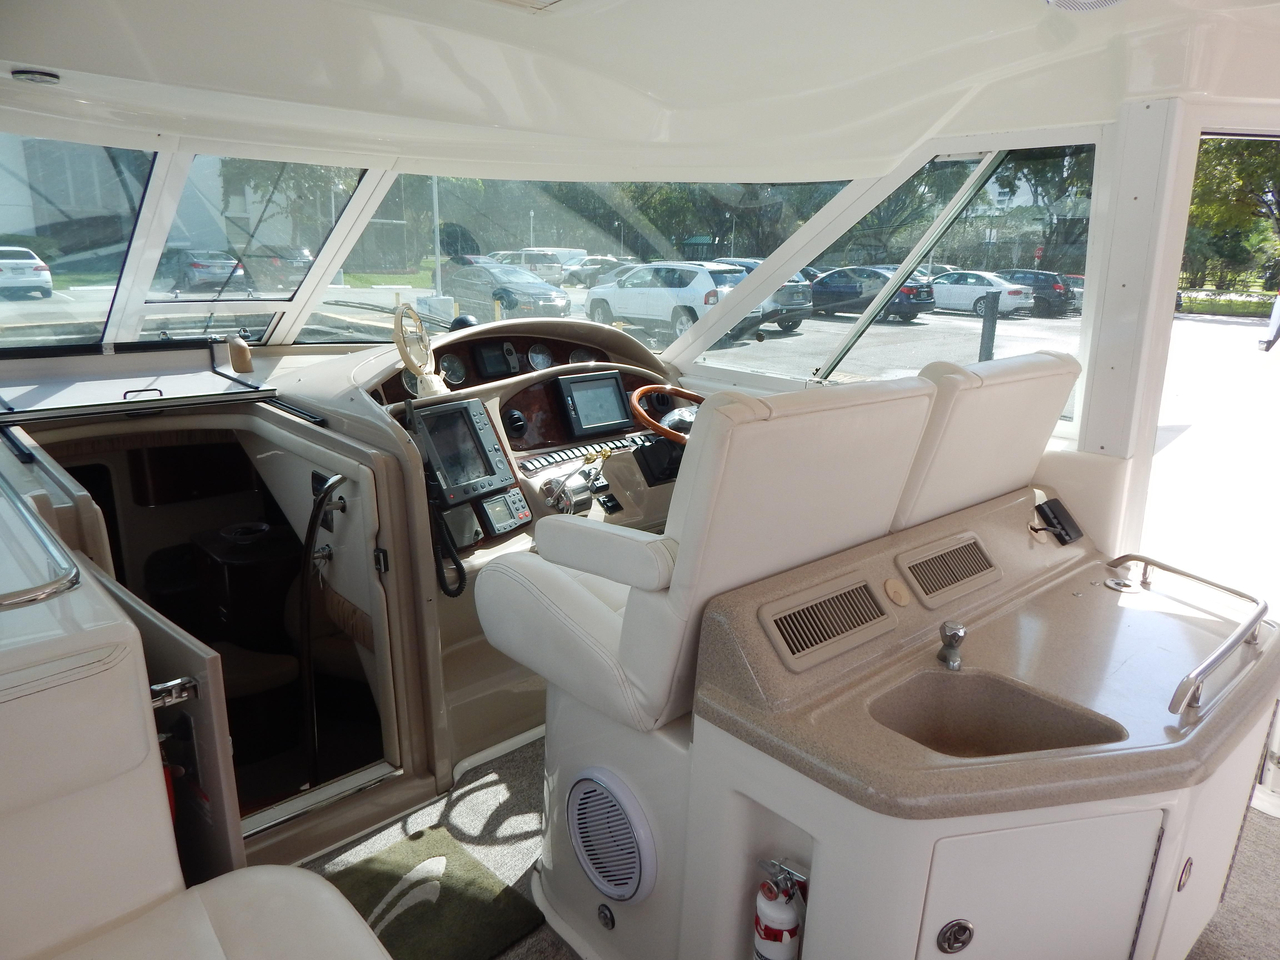 2004 used sea ray 390 motor yacht cruiser boat for sale for 390 sea ray motor yacht for sale